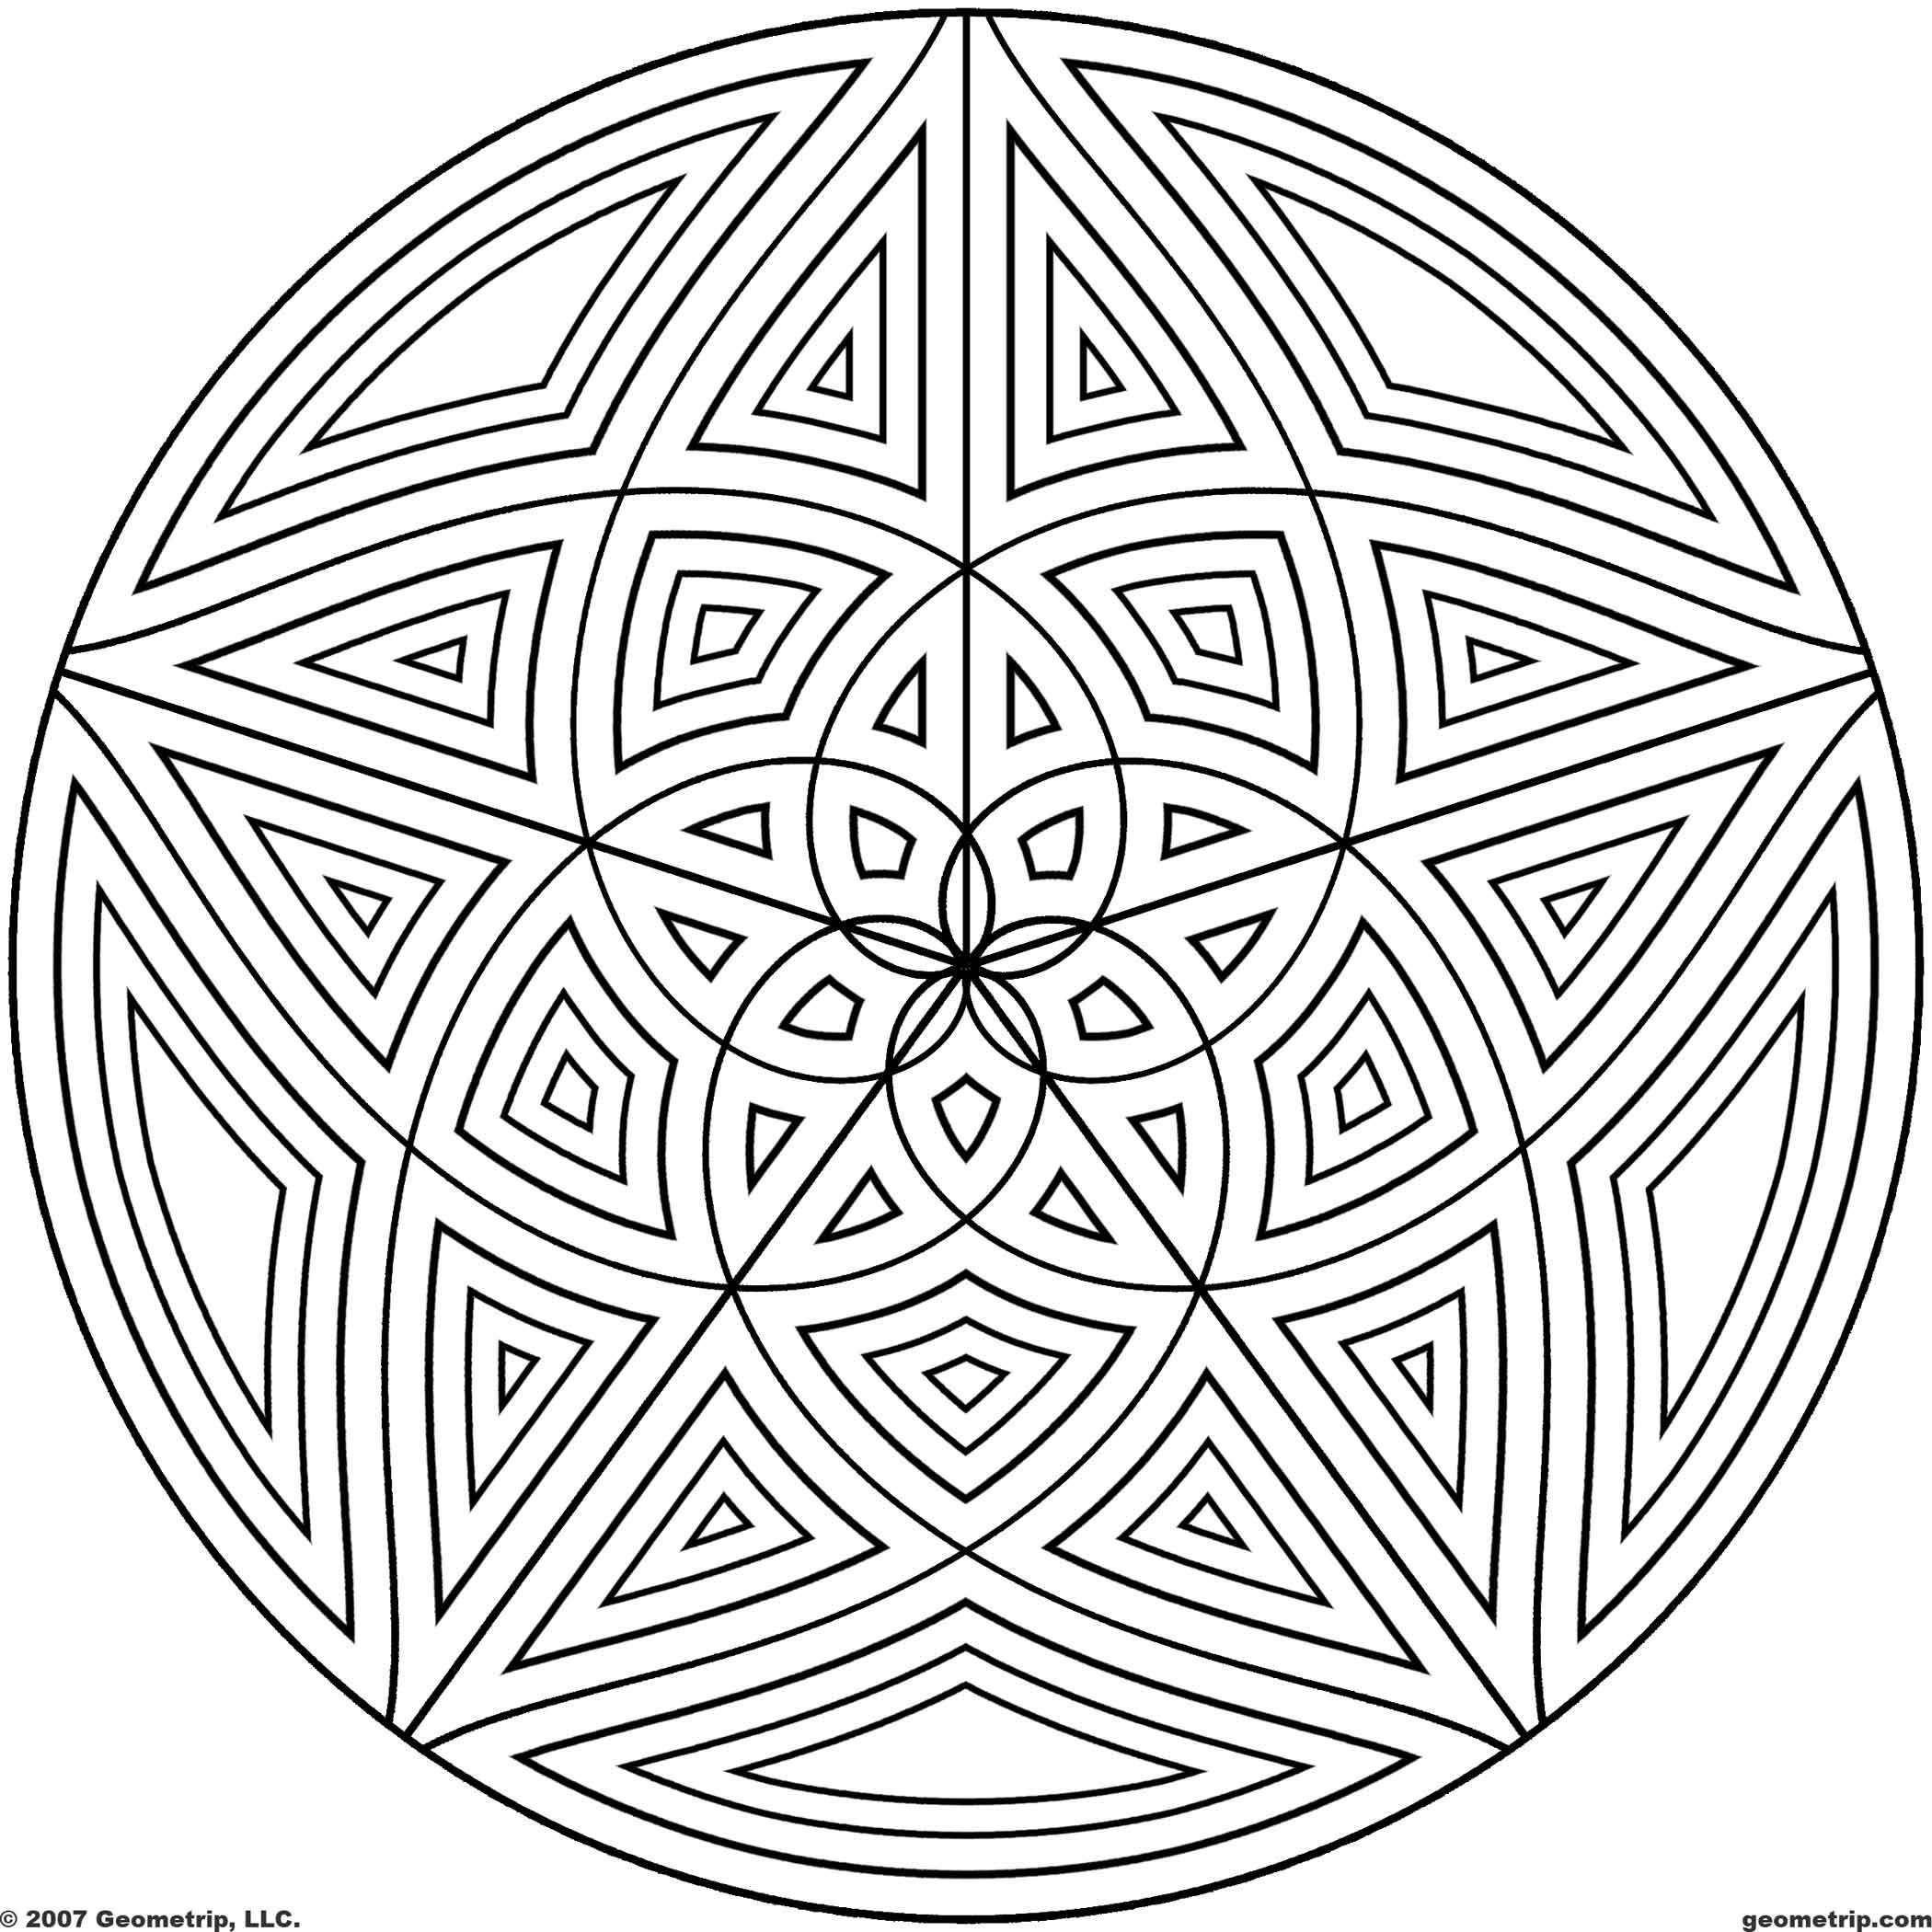 coloring pages of cool designs cool design coloring pages getcoloringpagescom cool coloring pages of designs